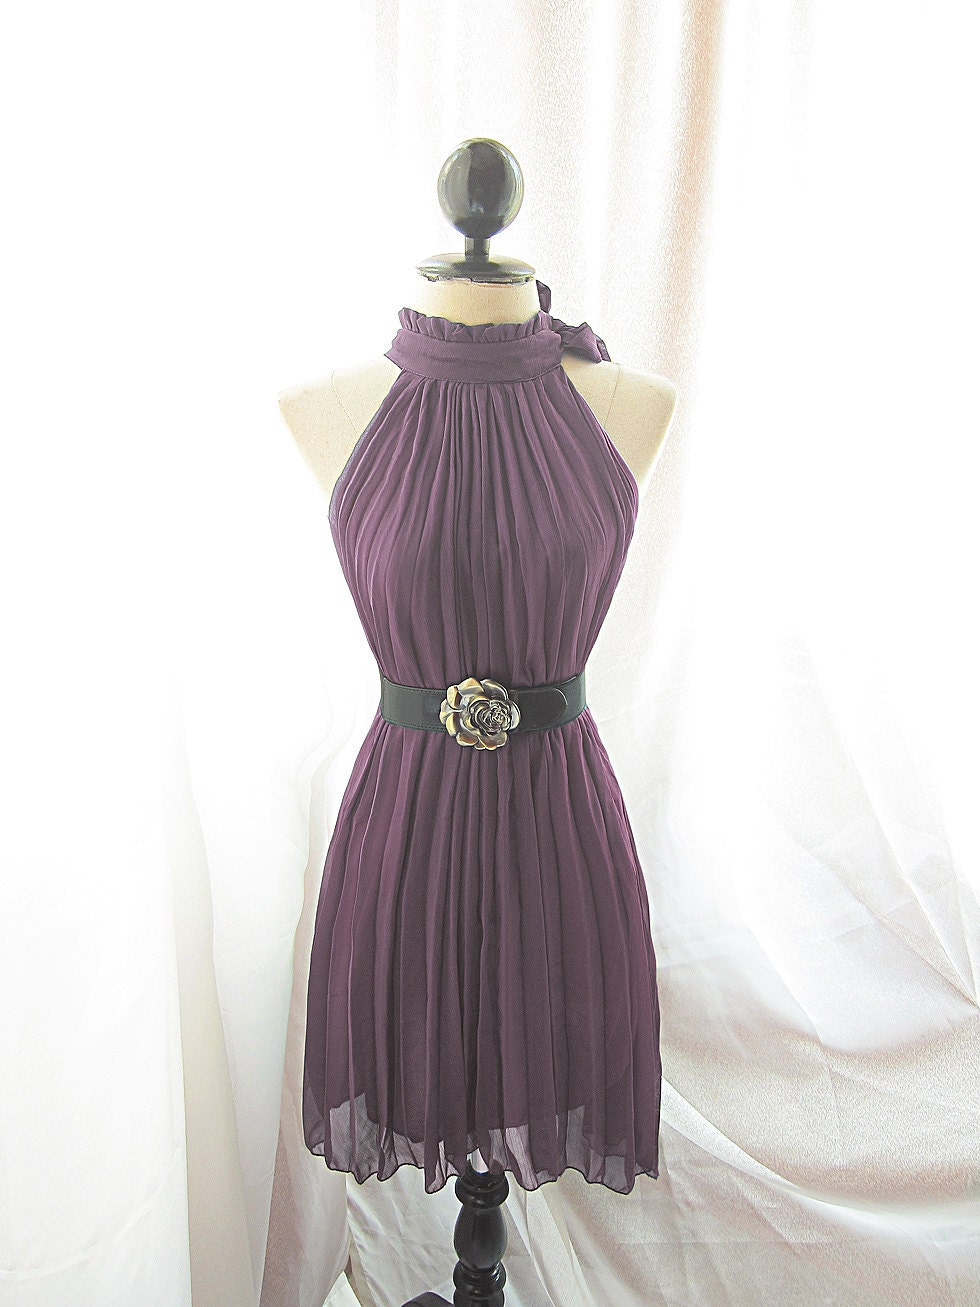 Classic Berry Plummy Mauvey Purple Plum Chantilly Havisham Romantic Chiffon Secret Garden Twilight Pleated Frolic Dress